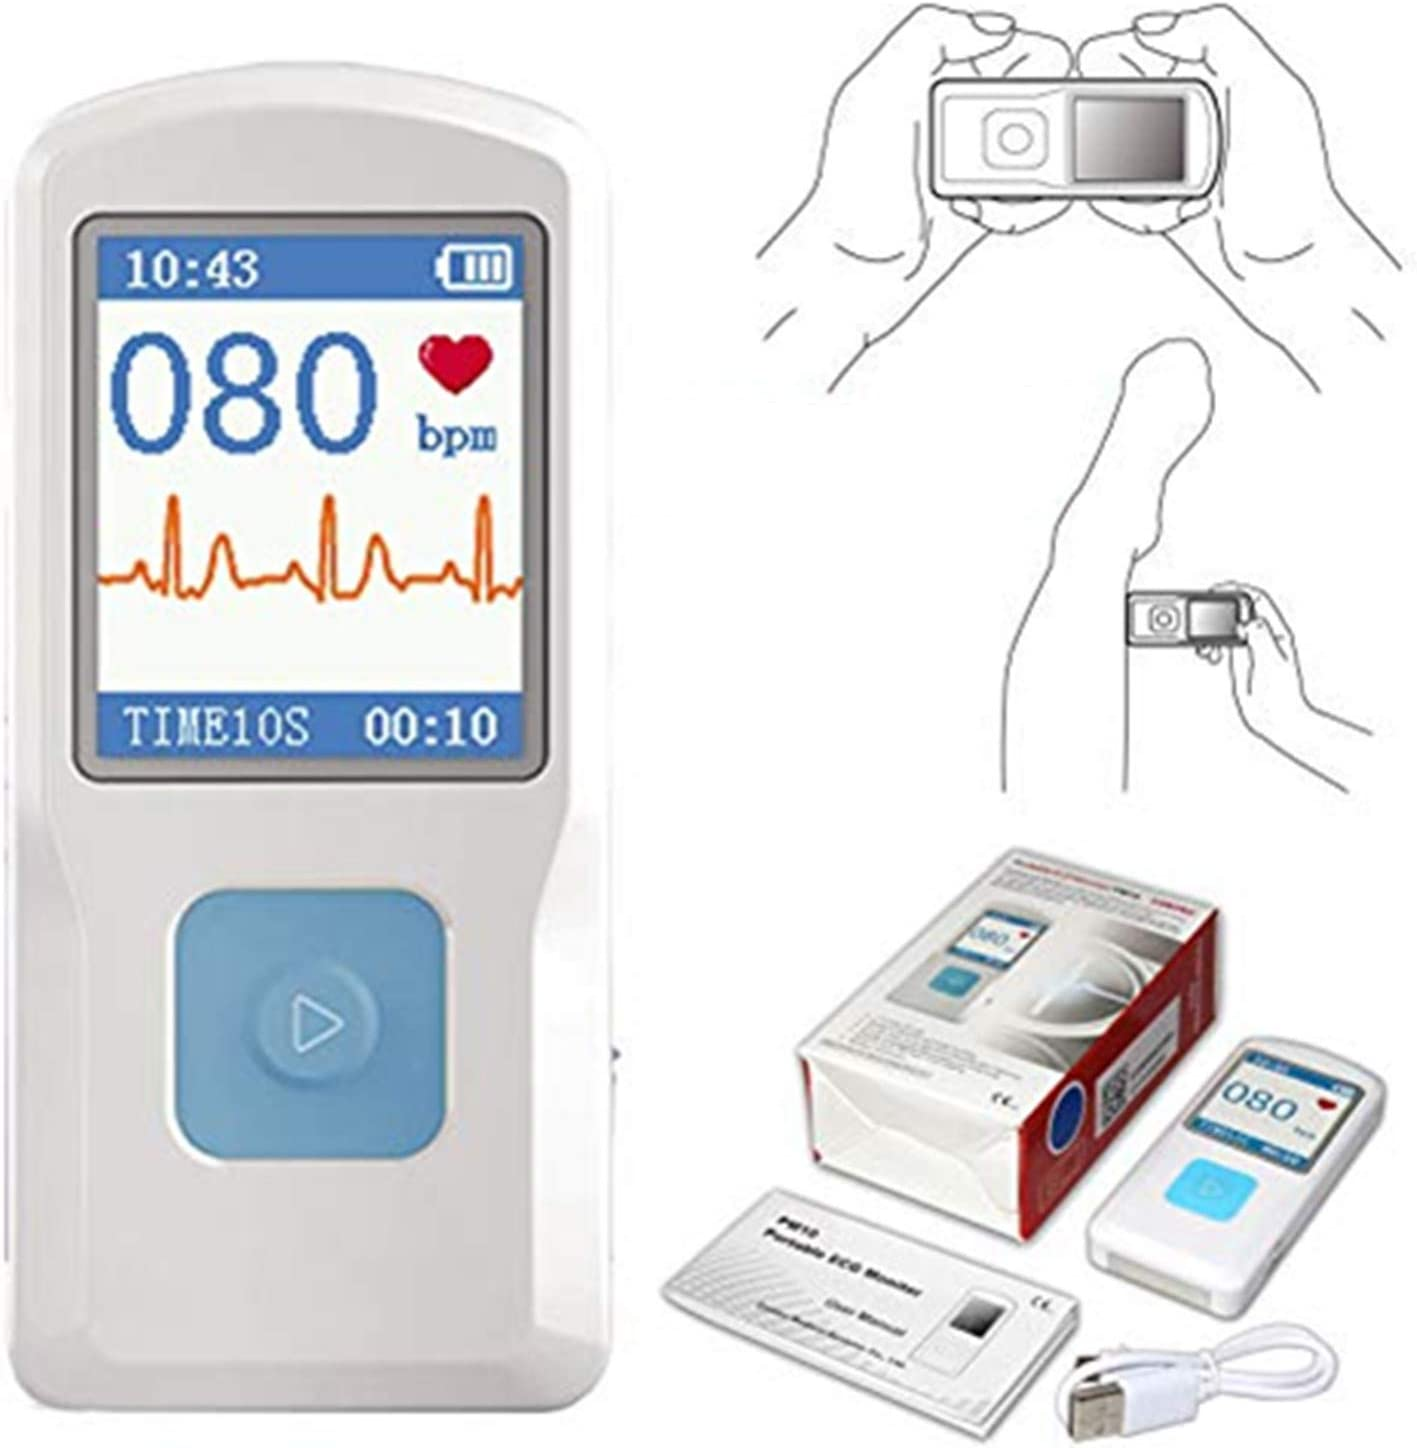 CONTEC Portable ECG/EKG Monitor PC Software Electrocardiogram Bluetooth Heart Rate Beat LCD Monitor PM10